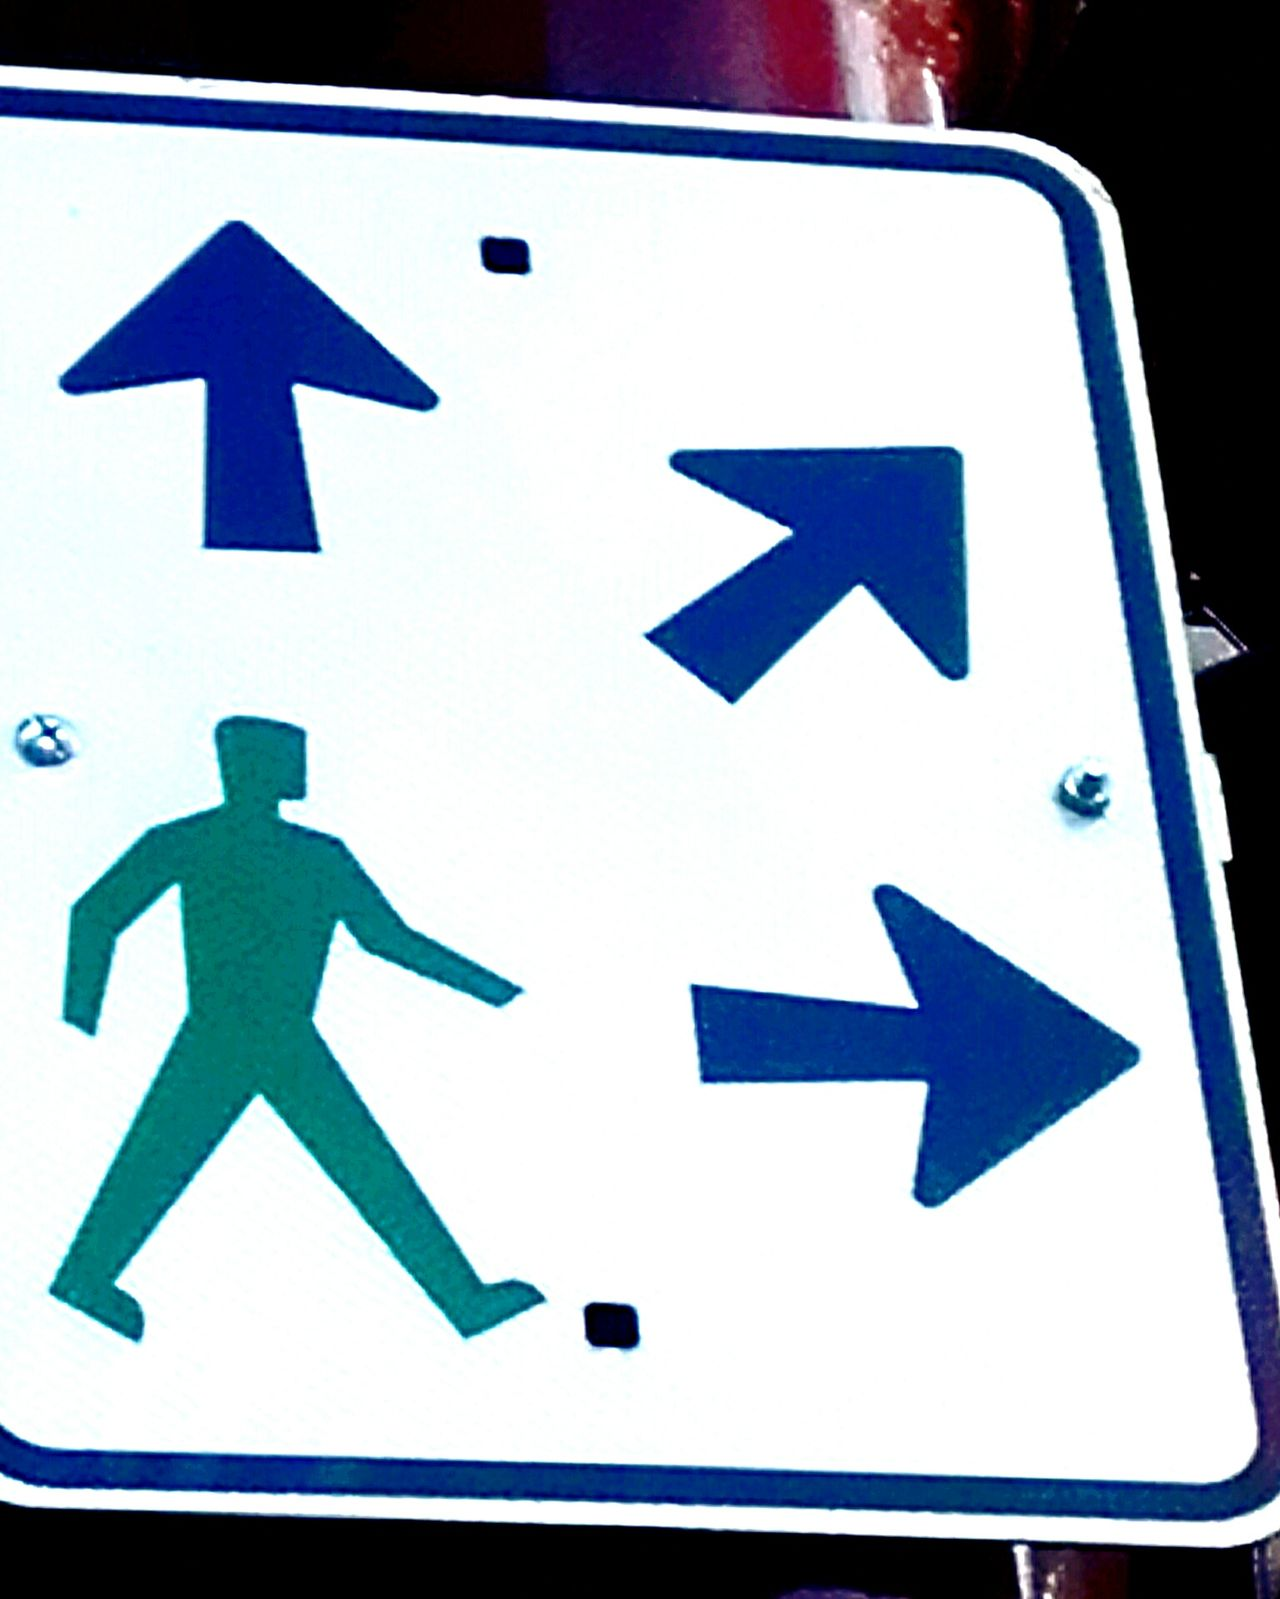 Arrows Pedestrian Crossing Green Man Arrow Sign Signs And Symbols Signs Sign PedestrianXing Which Way? Pedestrian Crossing Signs Which Way To Go? Directional Signs Directional Arrows This Way, Or That Way? Signporn Signs_collection Pedestrian Signs Signs, Signs, & More Signs Signs & More Signs Signstalkers Which Direction? Stickman SignsSignsAndMoreSigns OneWay? Human Representation